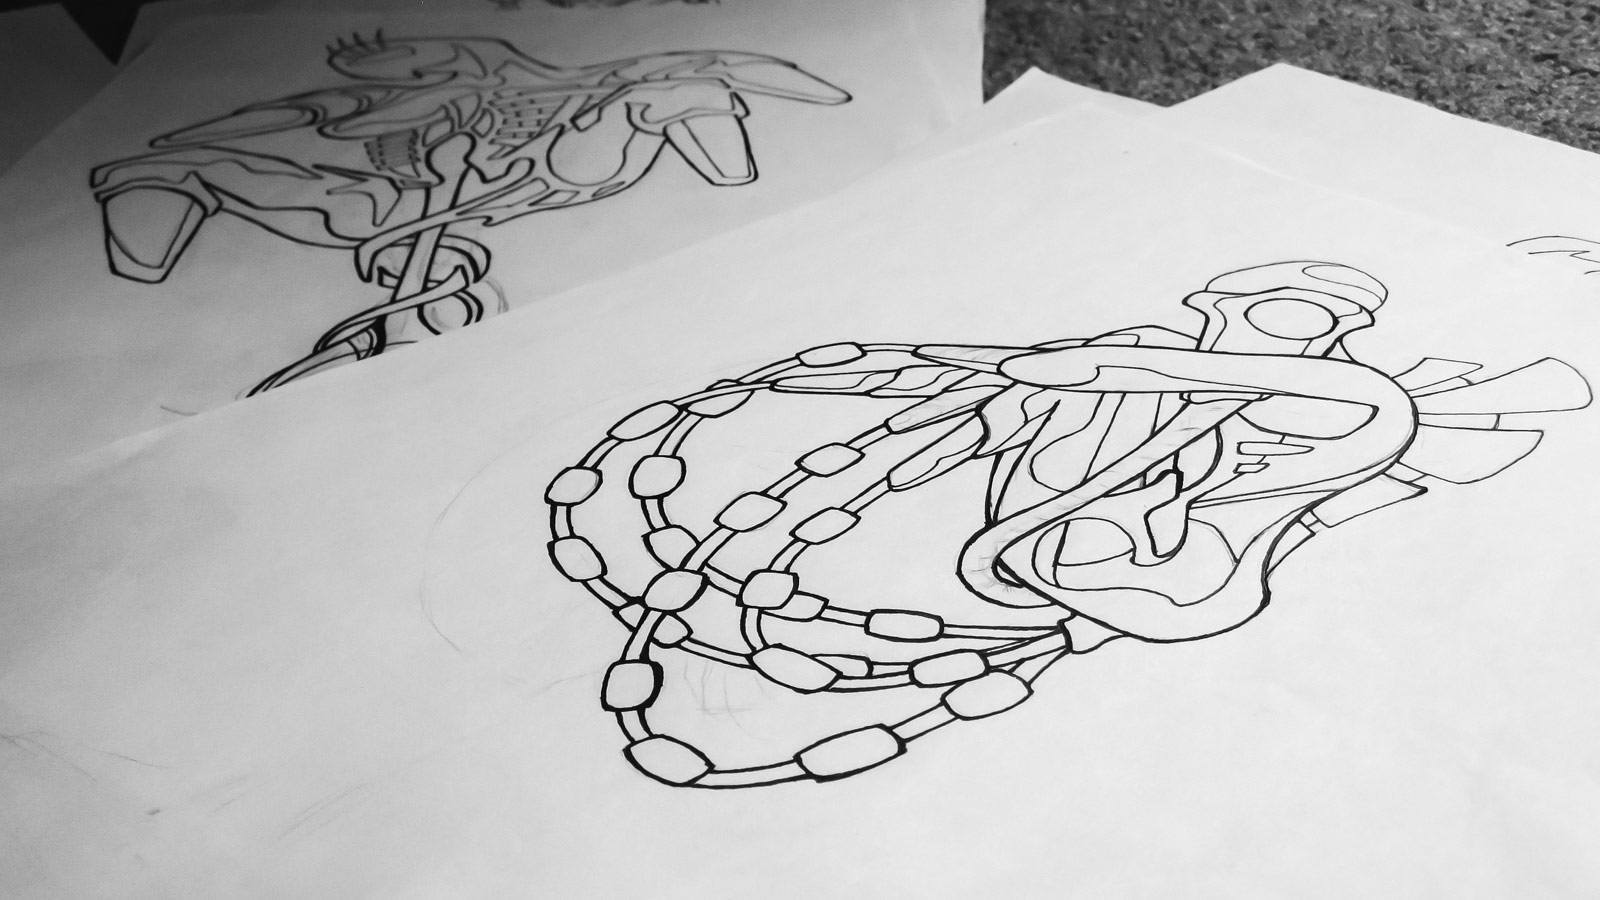 The Human Animal - Sexual Deconstructions of Robotic Females Skateboards - Drawing